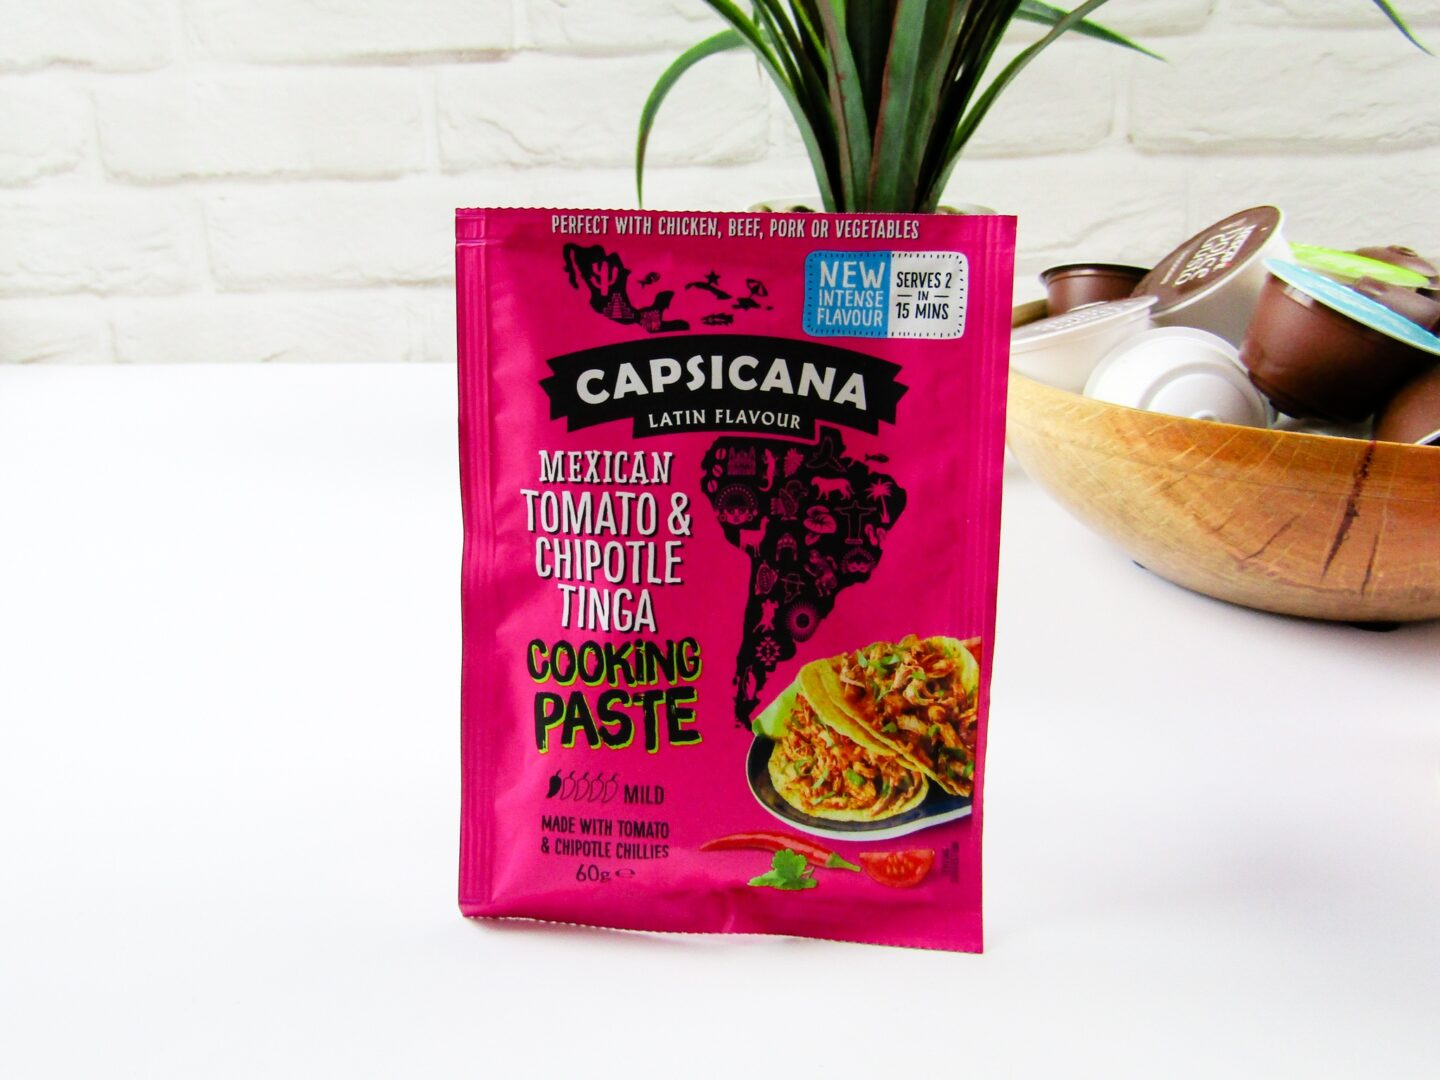 Capsicana Mexican Tomato & Chipotle Tinga Cooking Paste